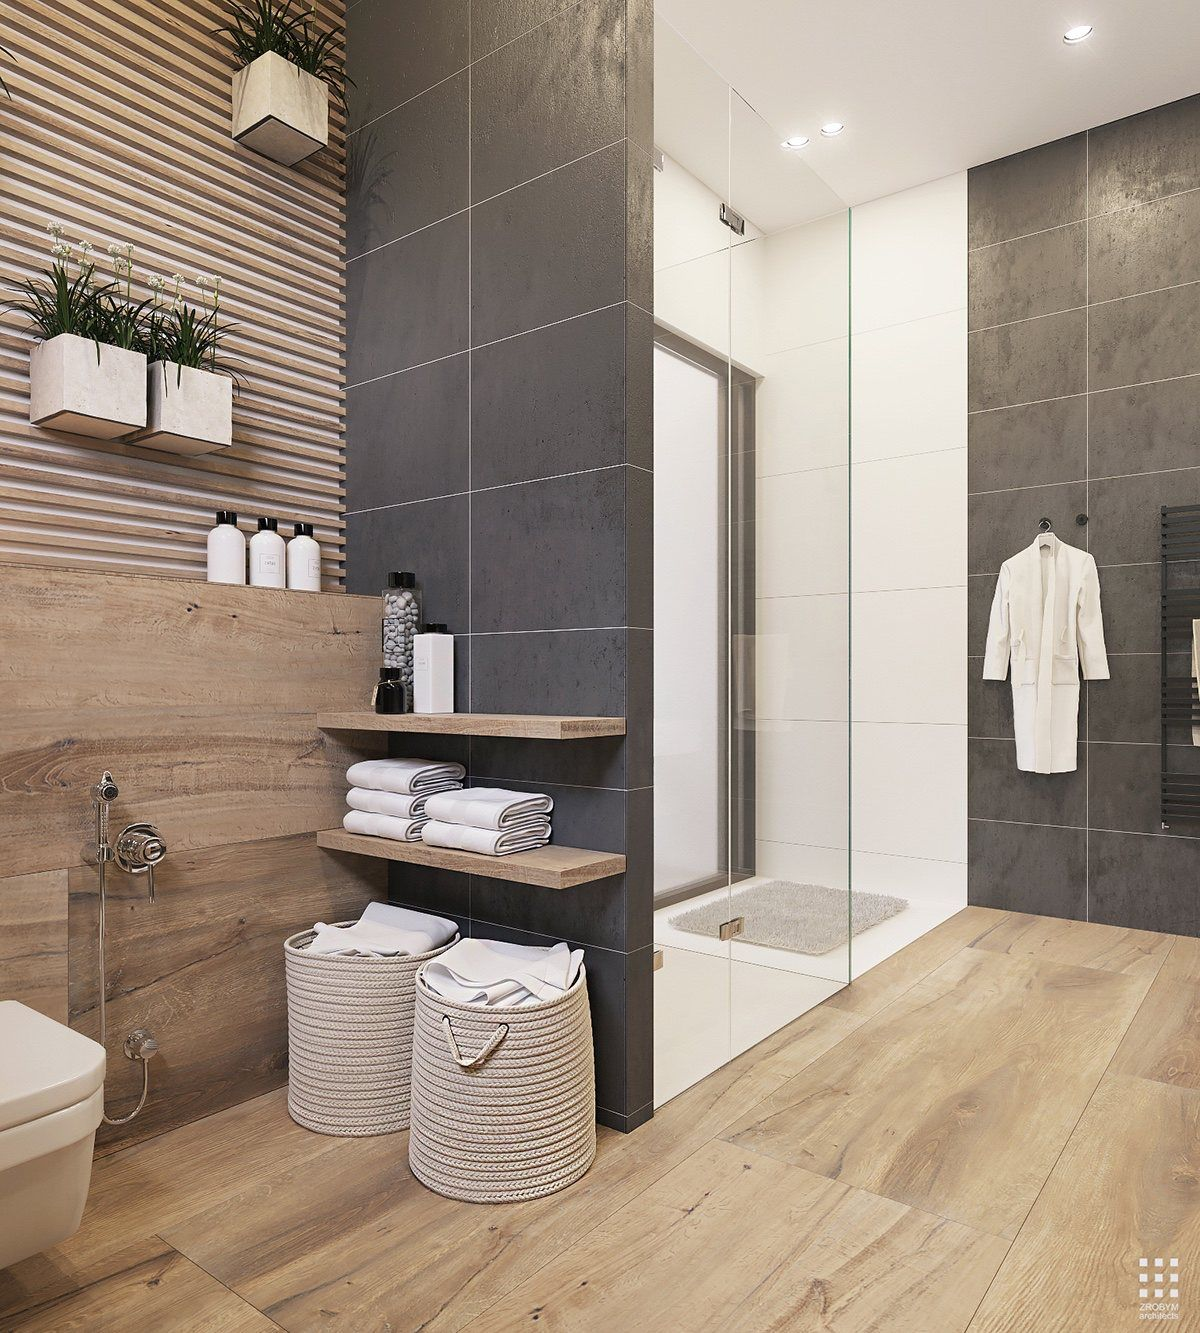 Bathroom Inspiration The Dos and Donts of Modern Bathroom